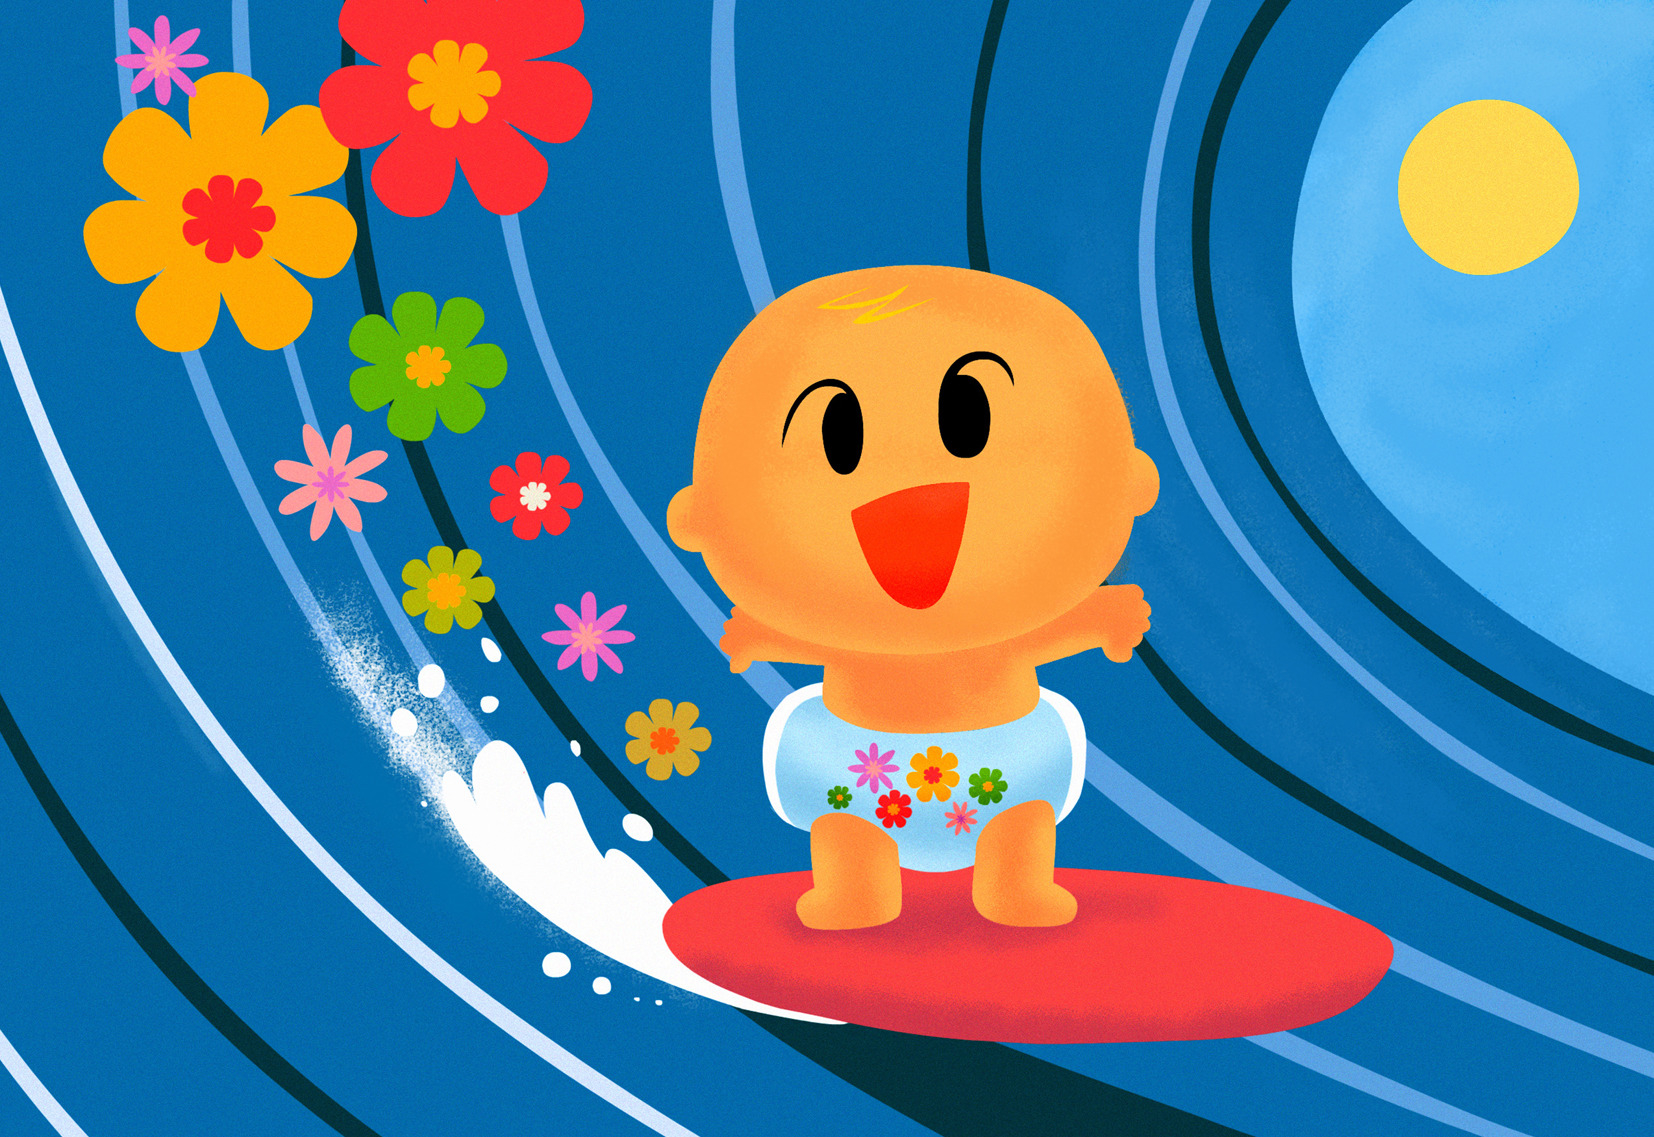 Clipart babys surfing png royalty free library Surfing Baby - El Señor Studio - Debut Art png royalty free library